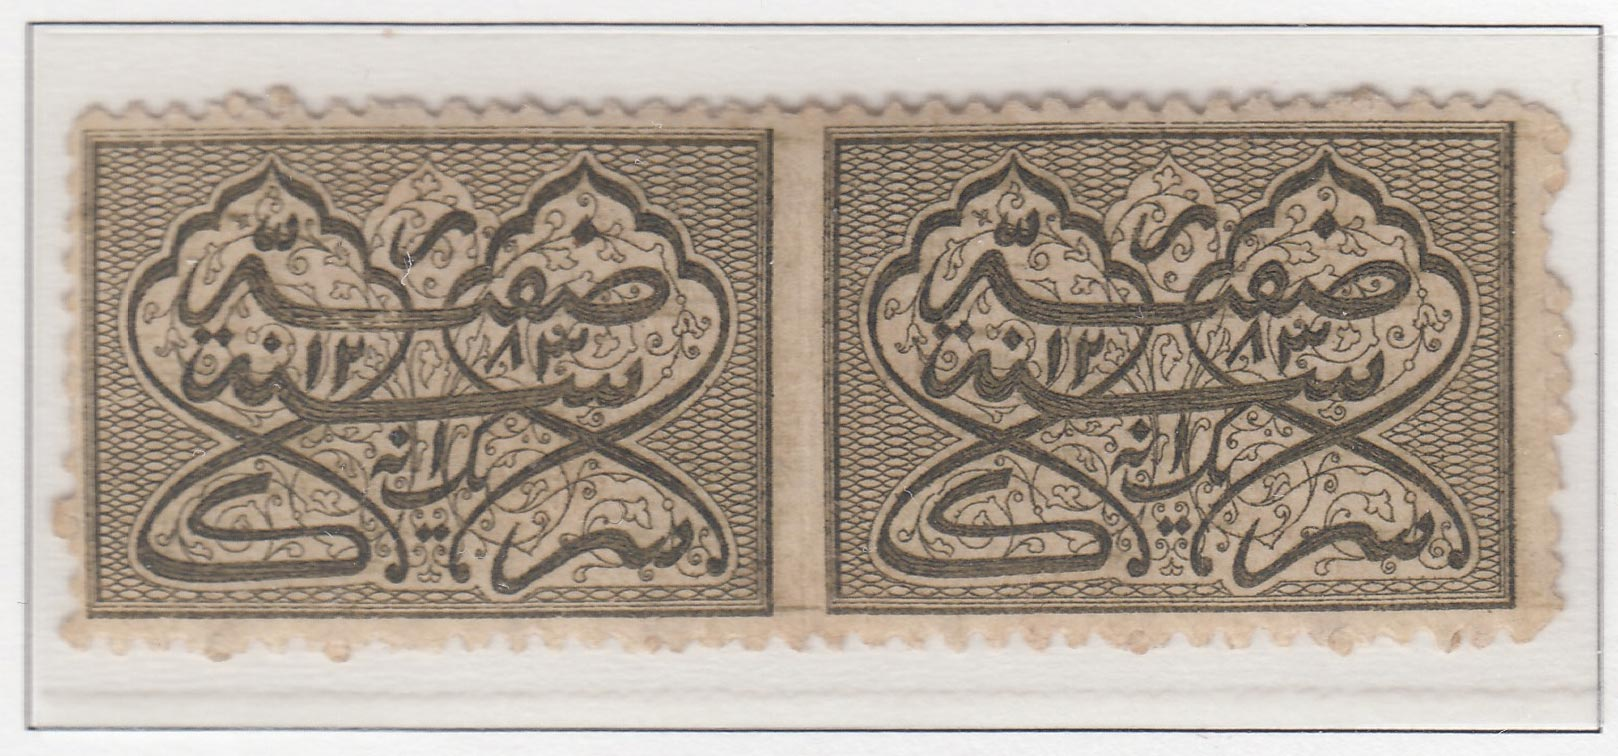 3-hyderabad-one-anna-olive-green-pair-imperforate-between